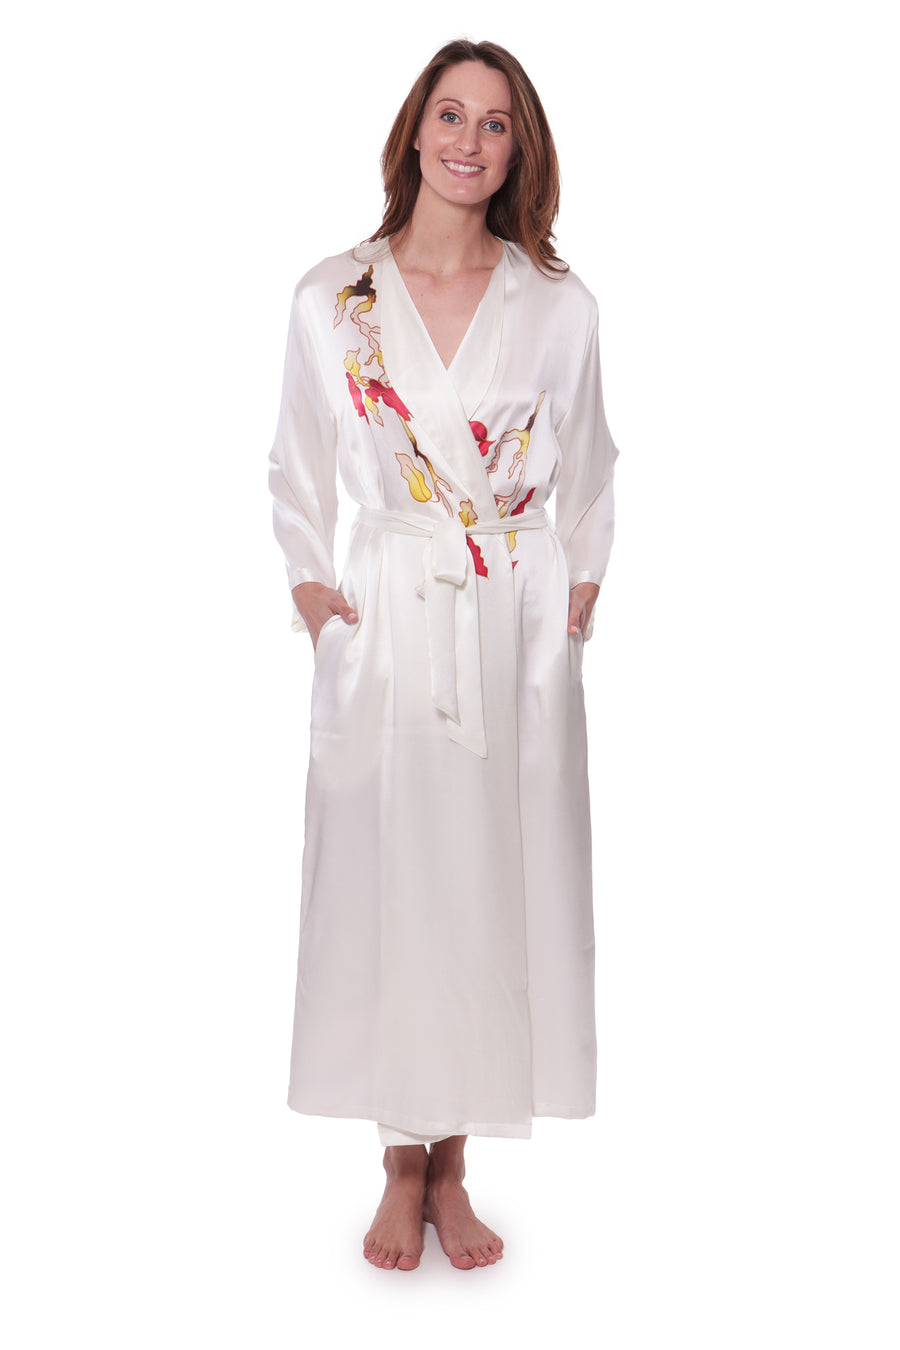 Chrysanthemum - Hand Painted Silk Robe - TexereSilk